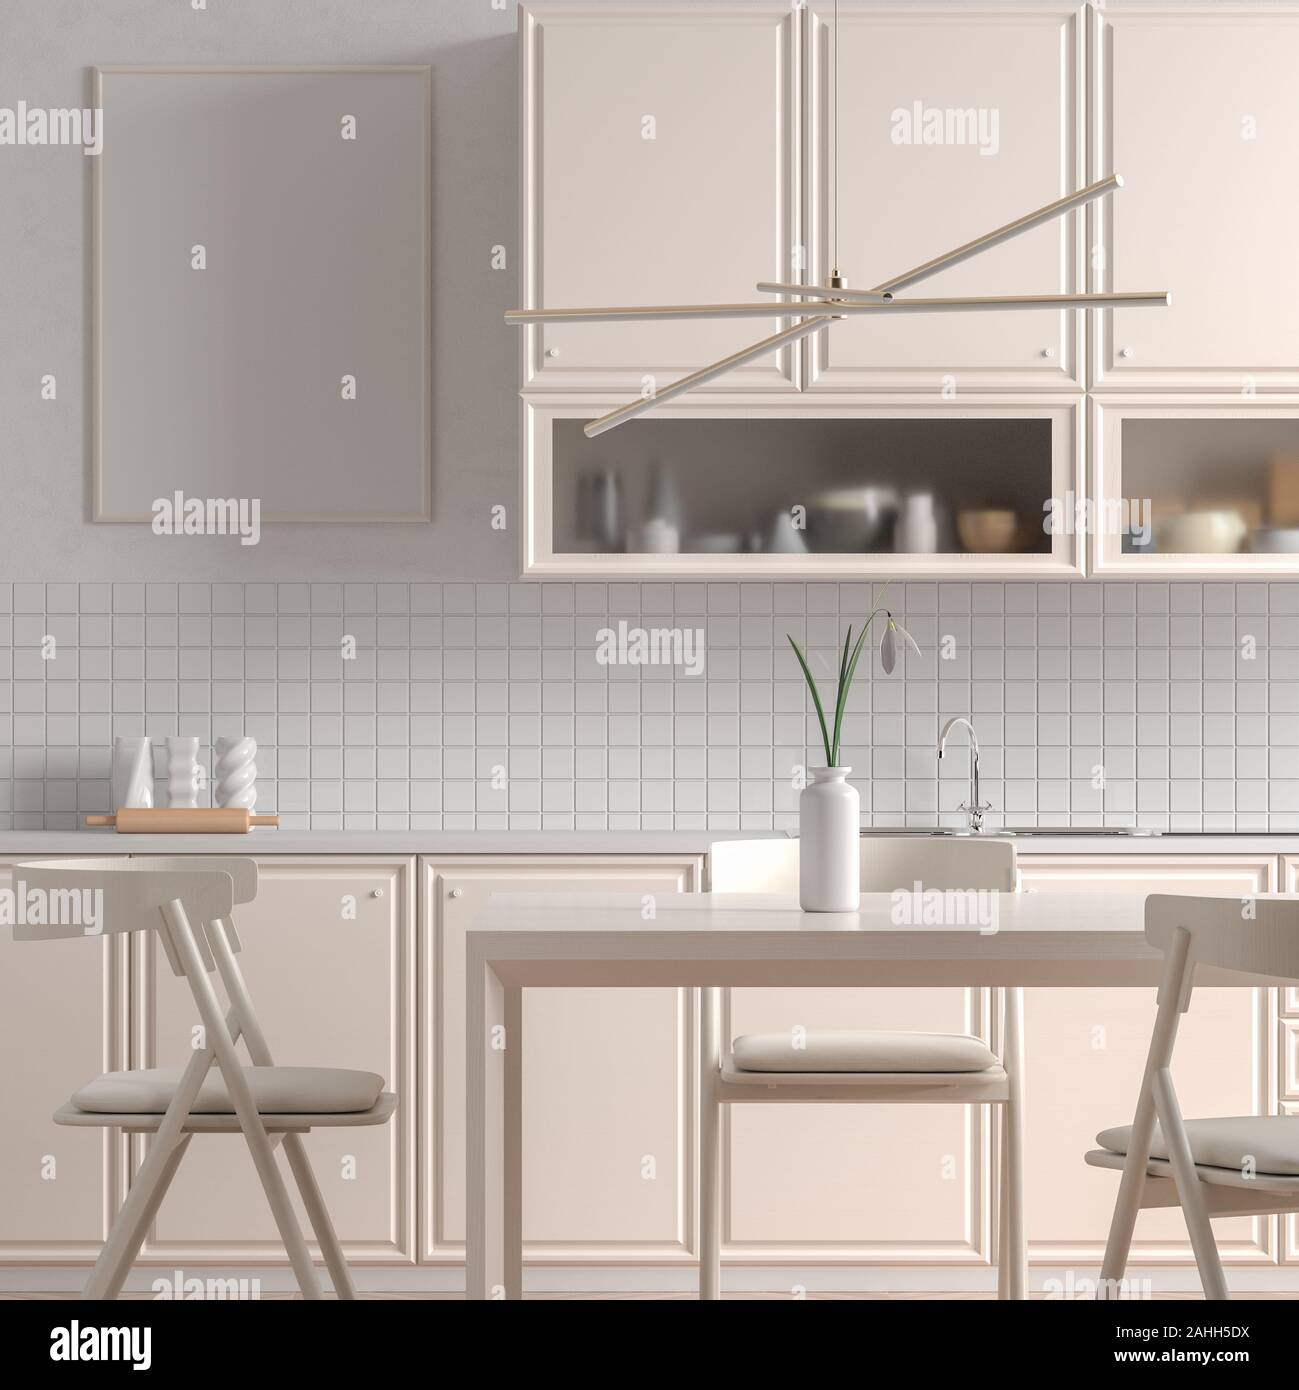 Mock Up Poster Frame In Scandinavian Style Kitchen With Dining Table Minimalist Kitchen Design 3d Illustration Stock Photo Alamy